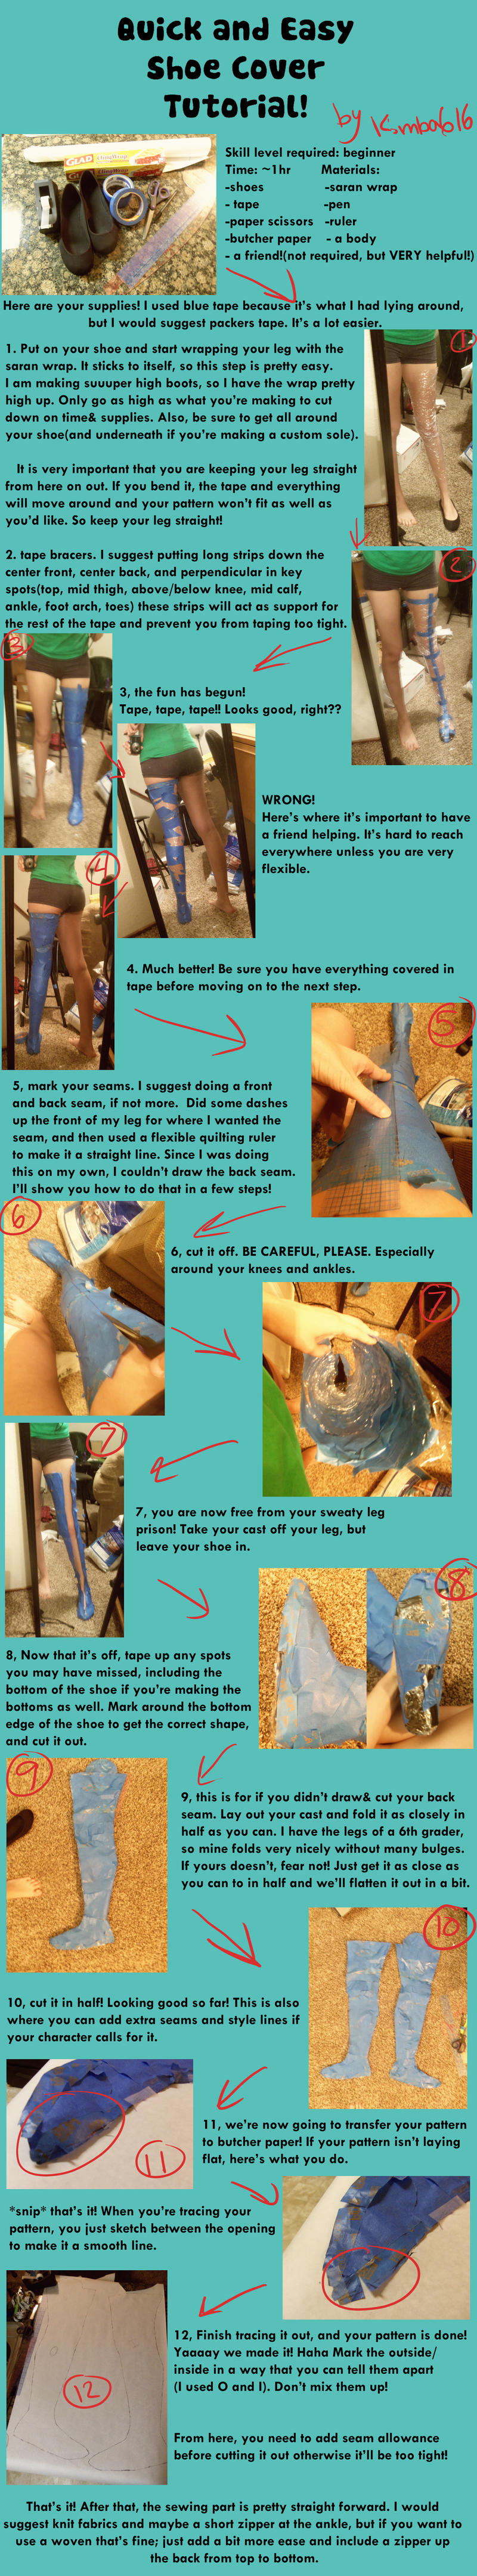 Quick and Easy Cosplay Boot Cover Tutorial by Kimba616 on DeviantArt